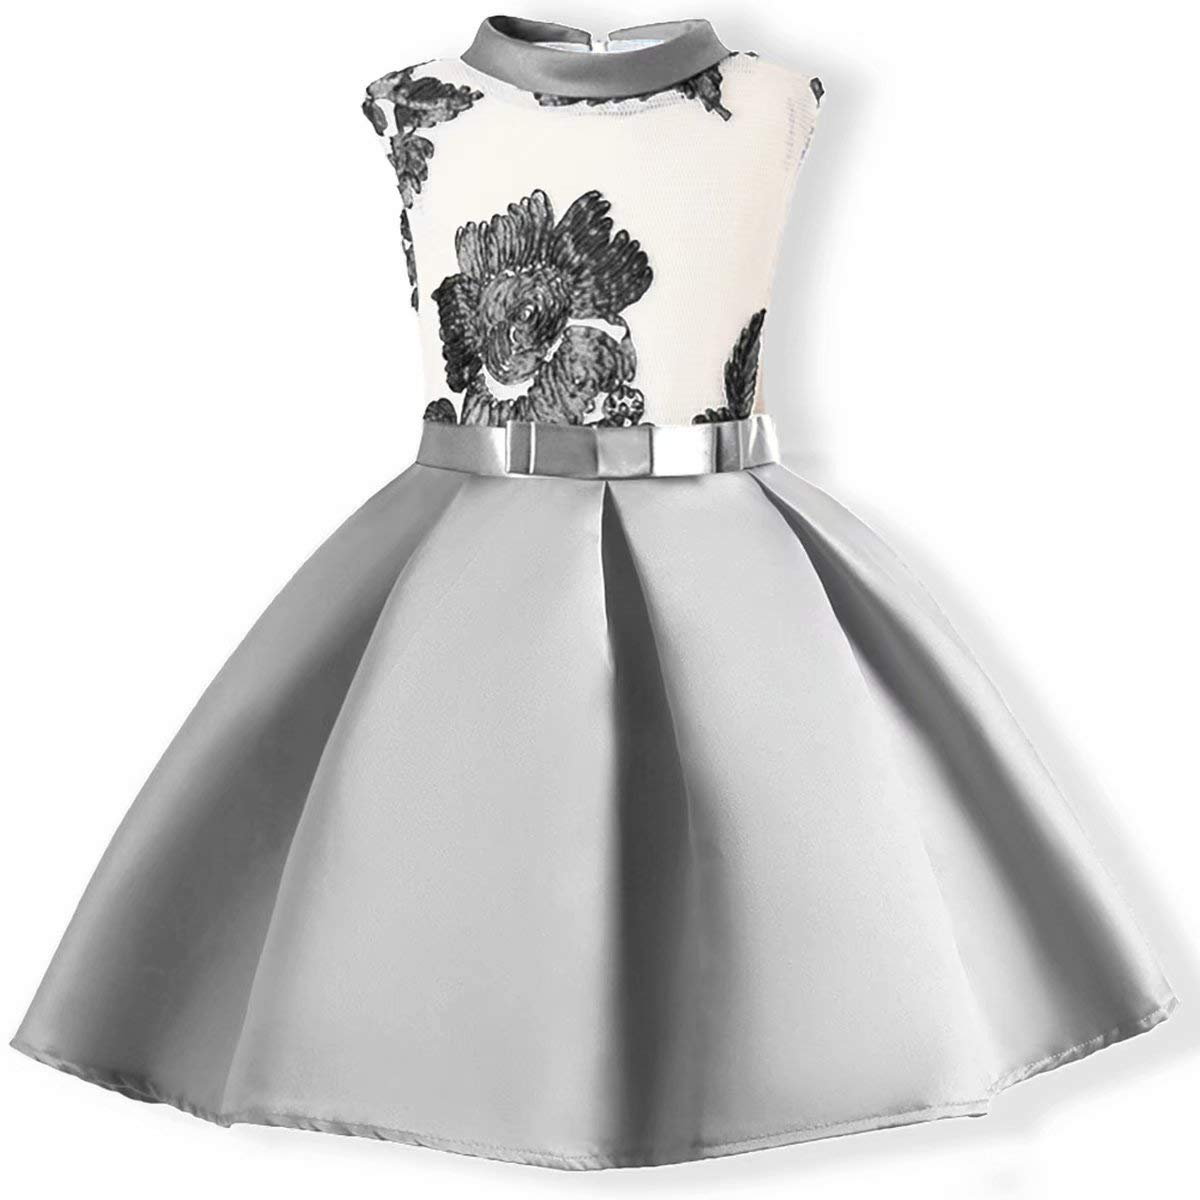 AYOMIS Flower Girl Pageant Dress Kids Party Embroidery Wedding Dresses 2-9 Years(Silver,4-5Y)